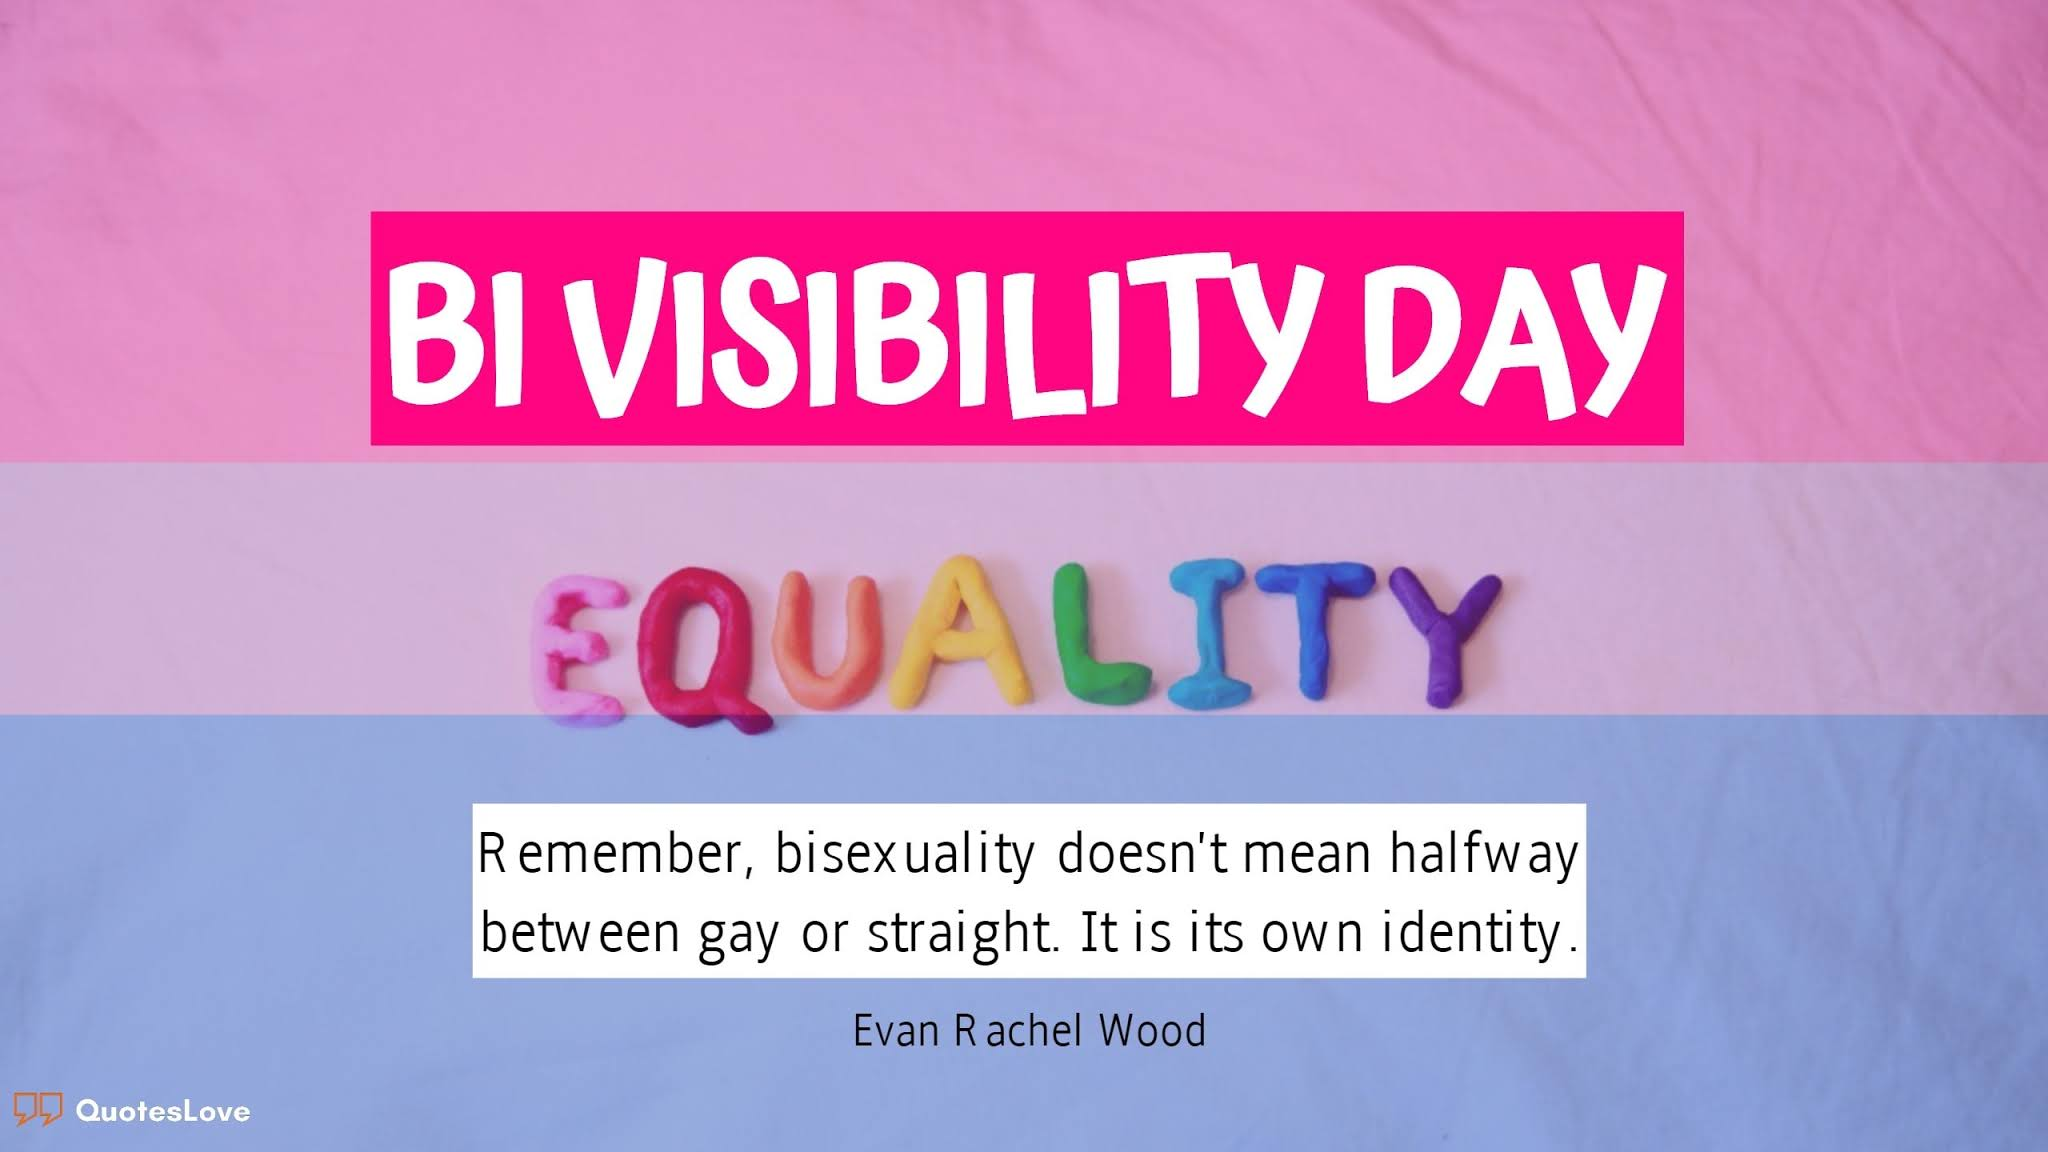 19 [Best] Bi Visibility Day Quotes, Images, Poster, Pictures